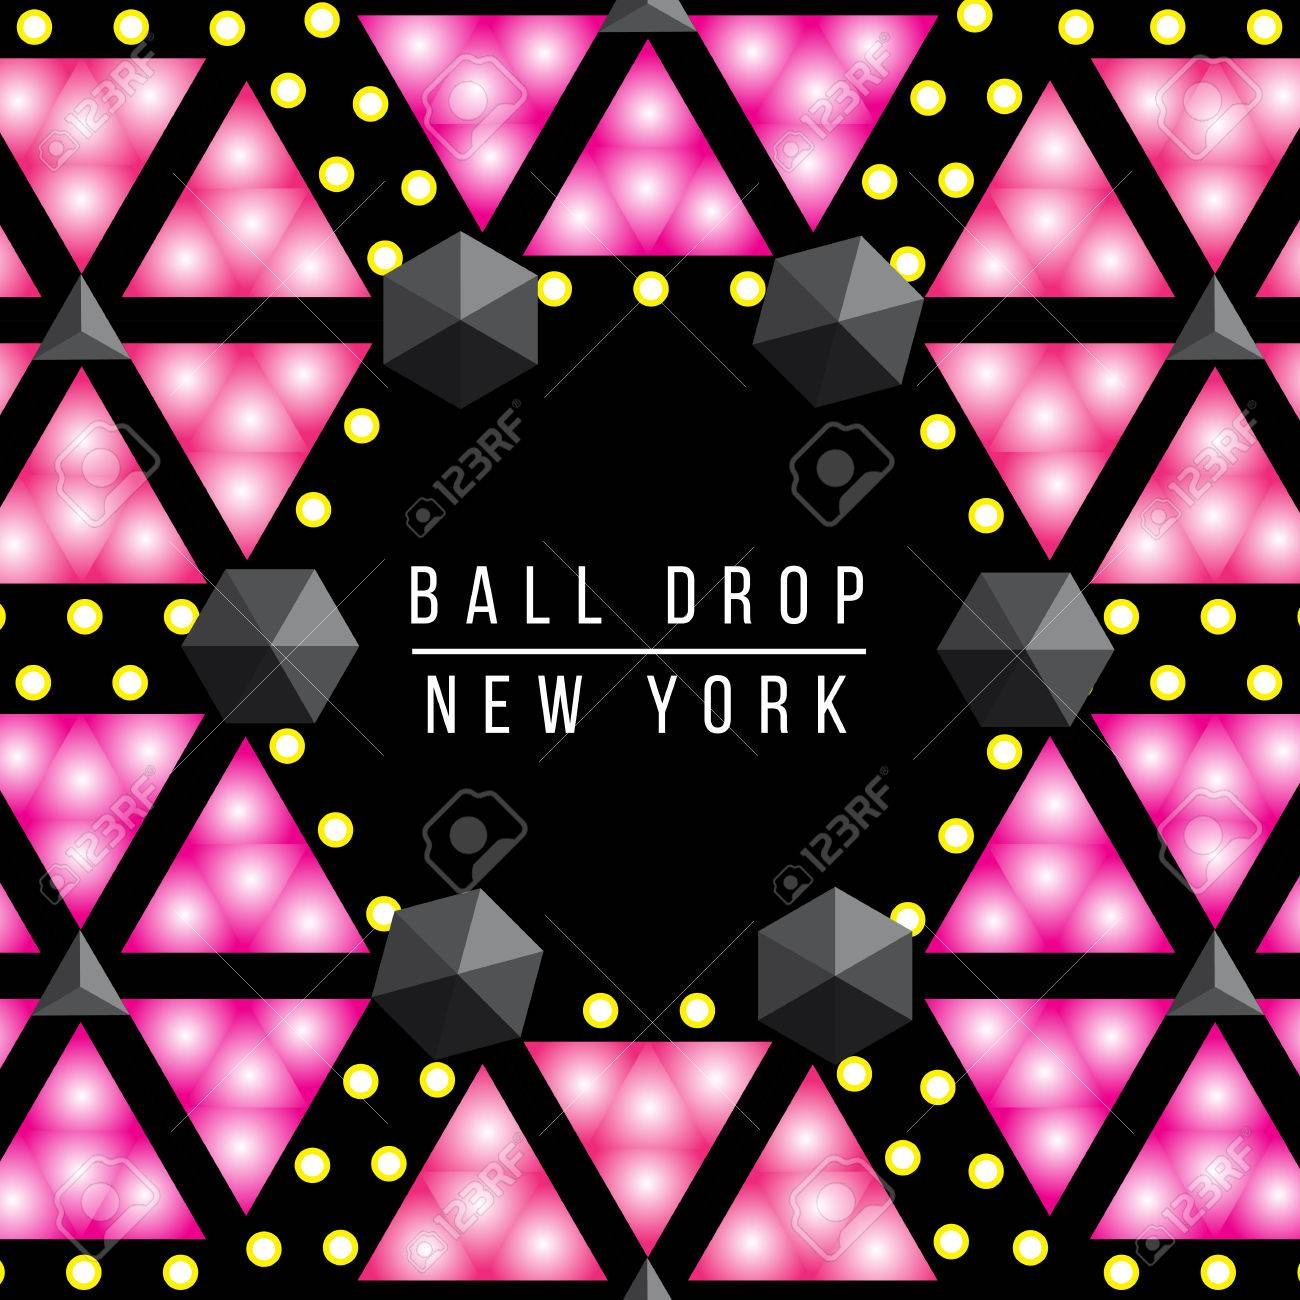 new year ball drop in times square new york vector decorative background for party poster